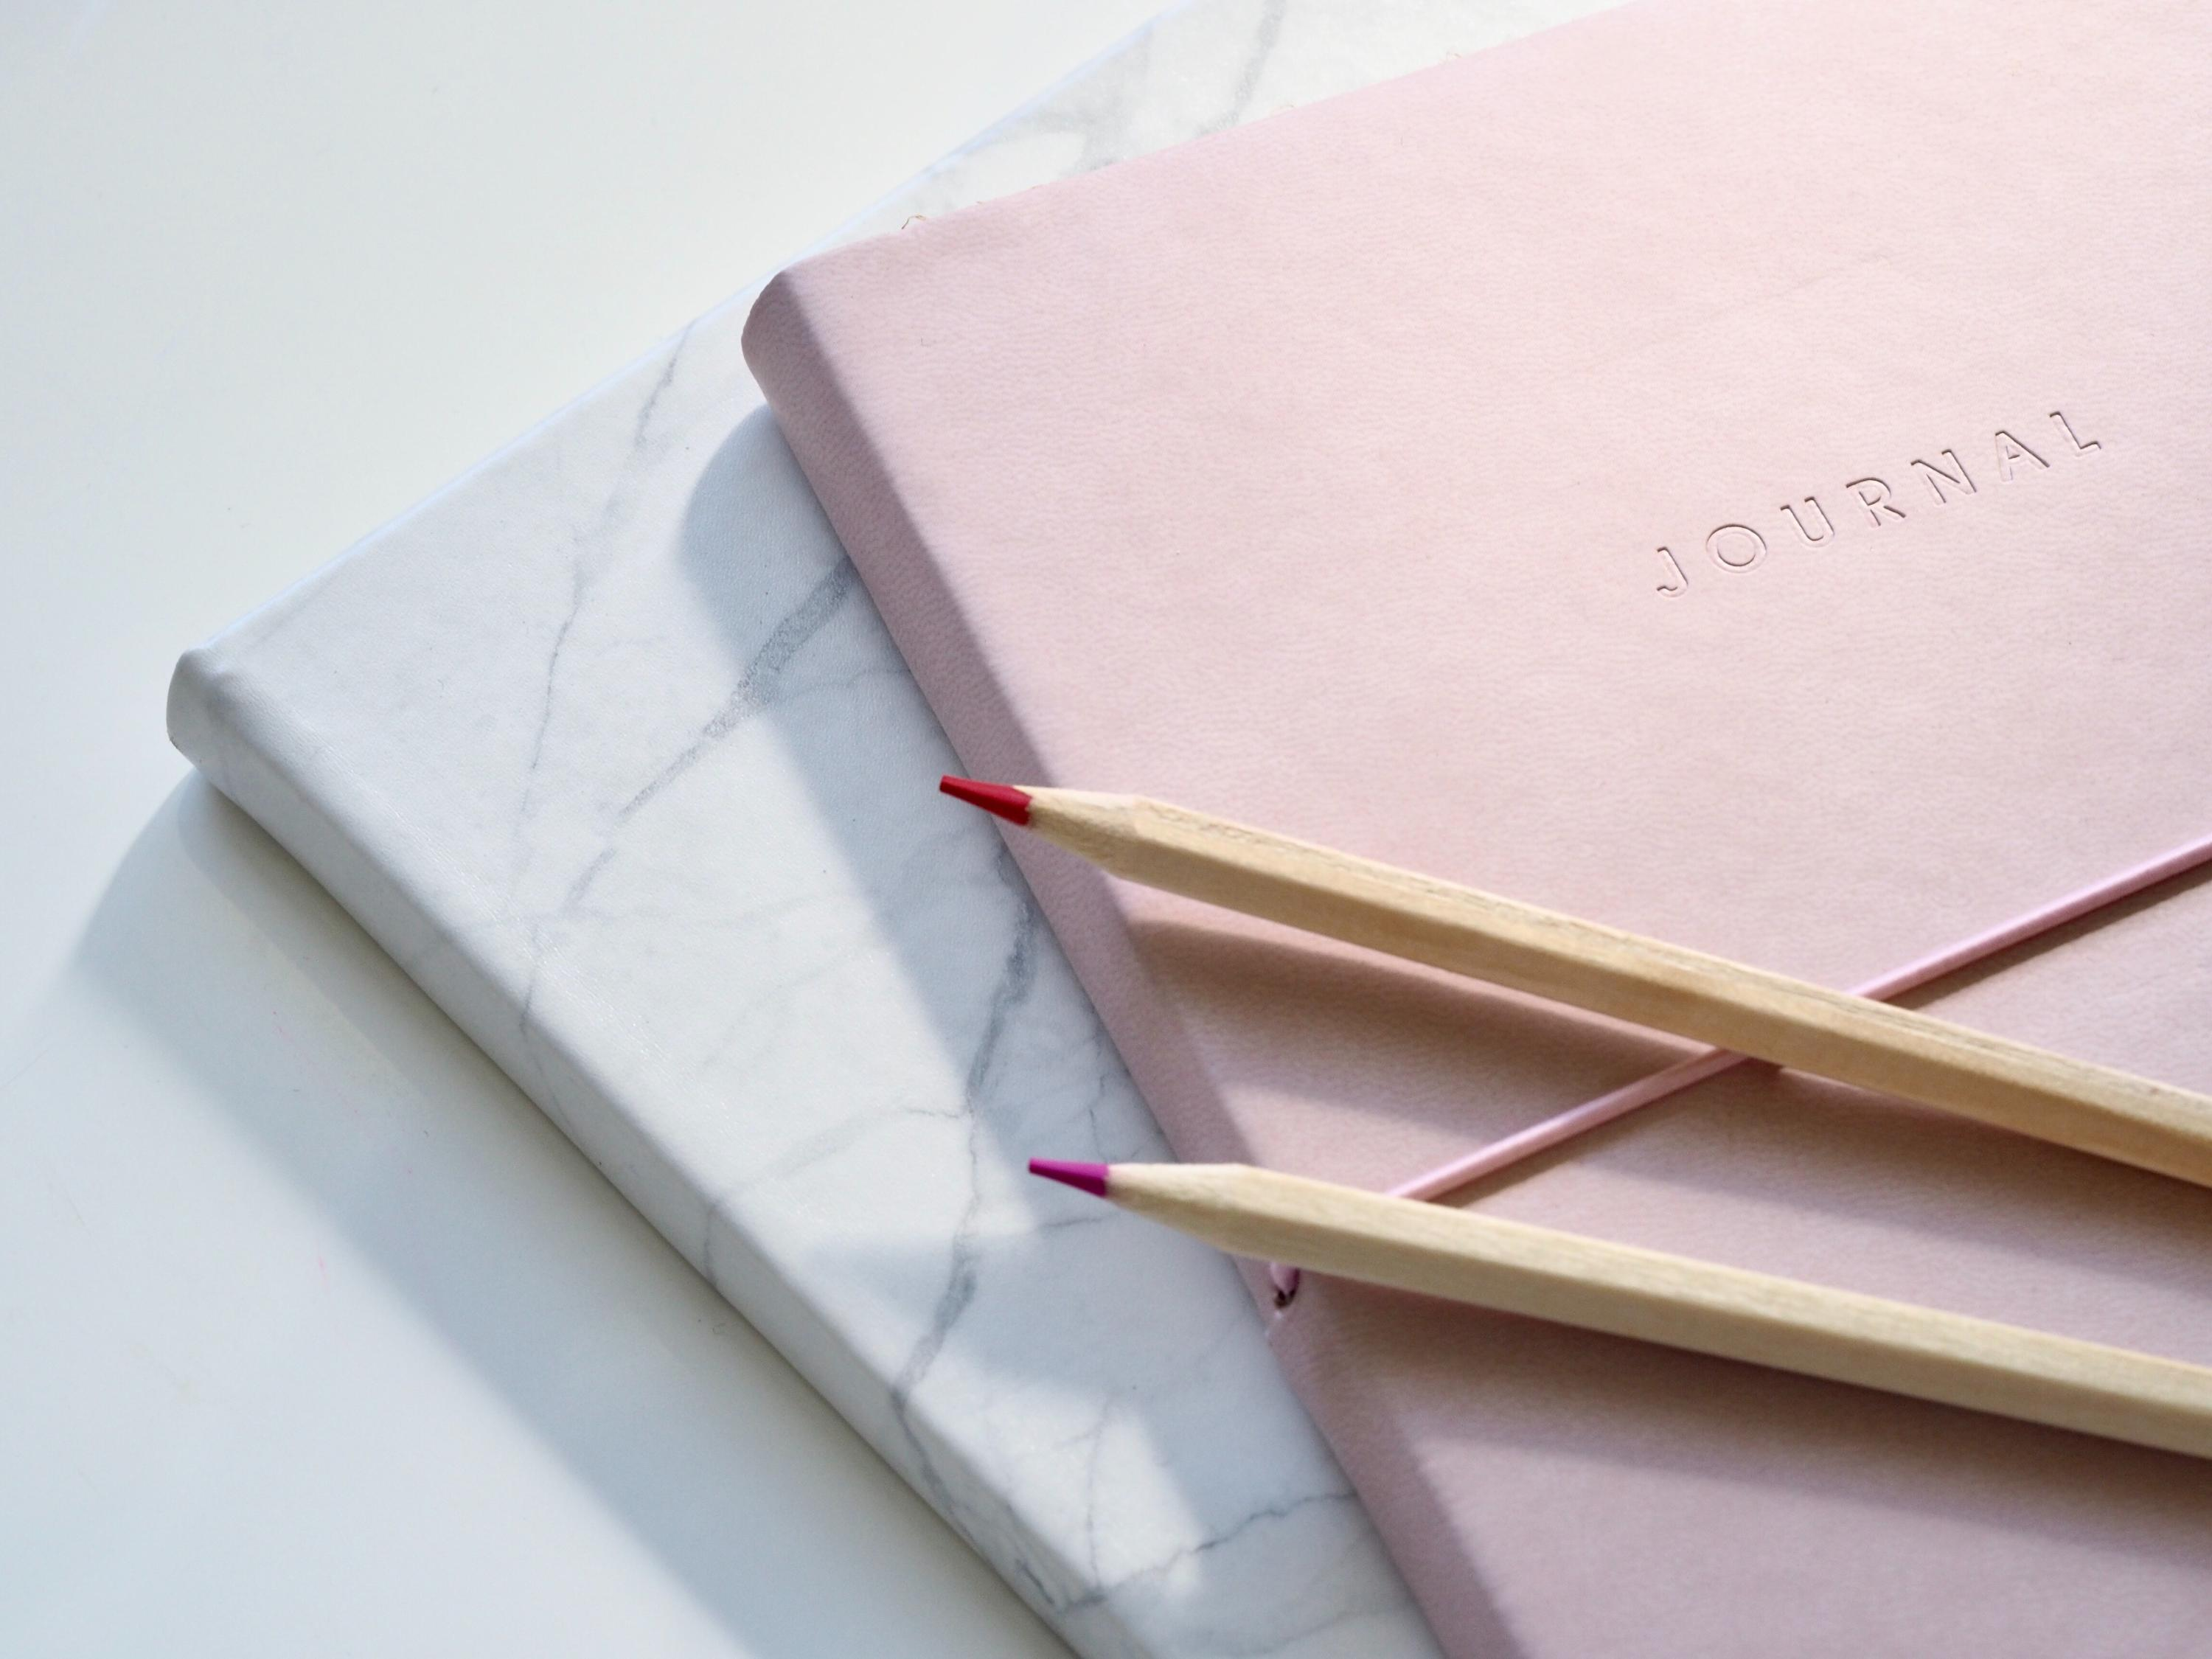 Two journals and two pencils on a white desk.